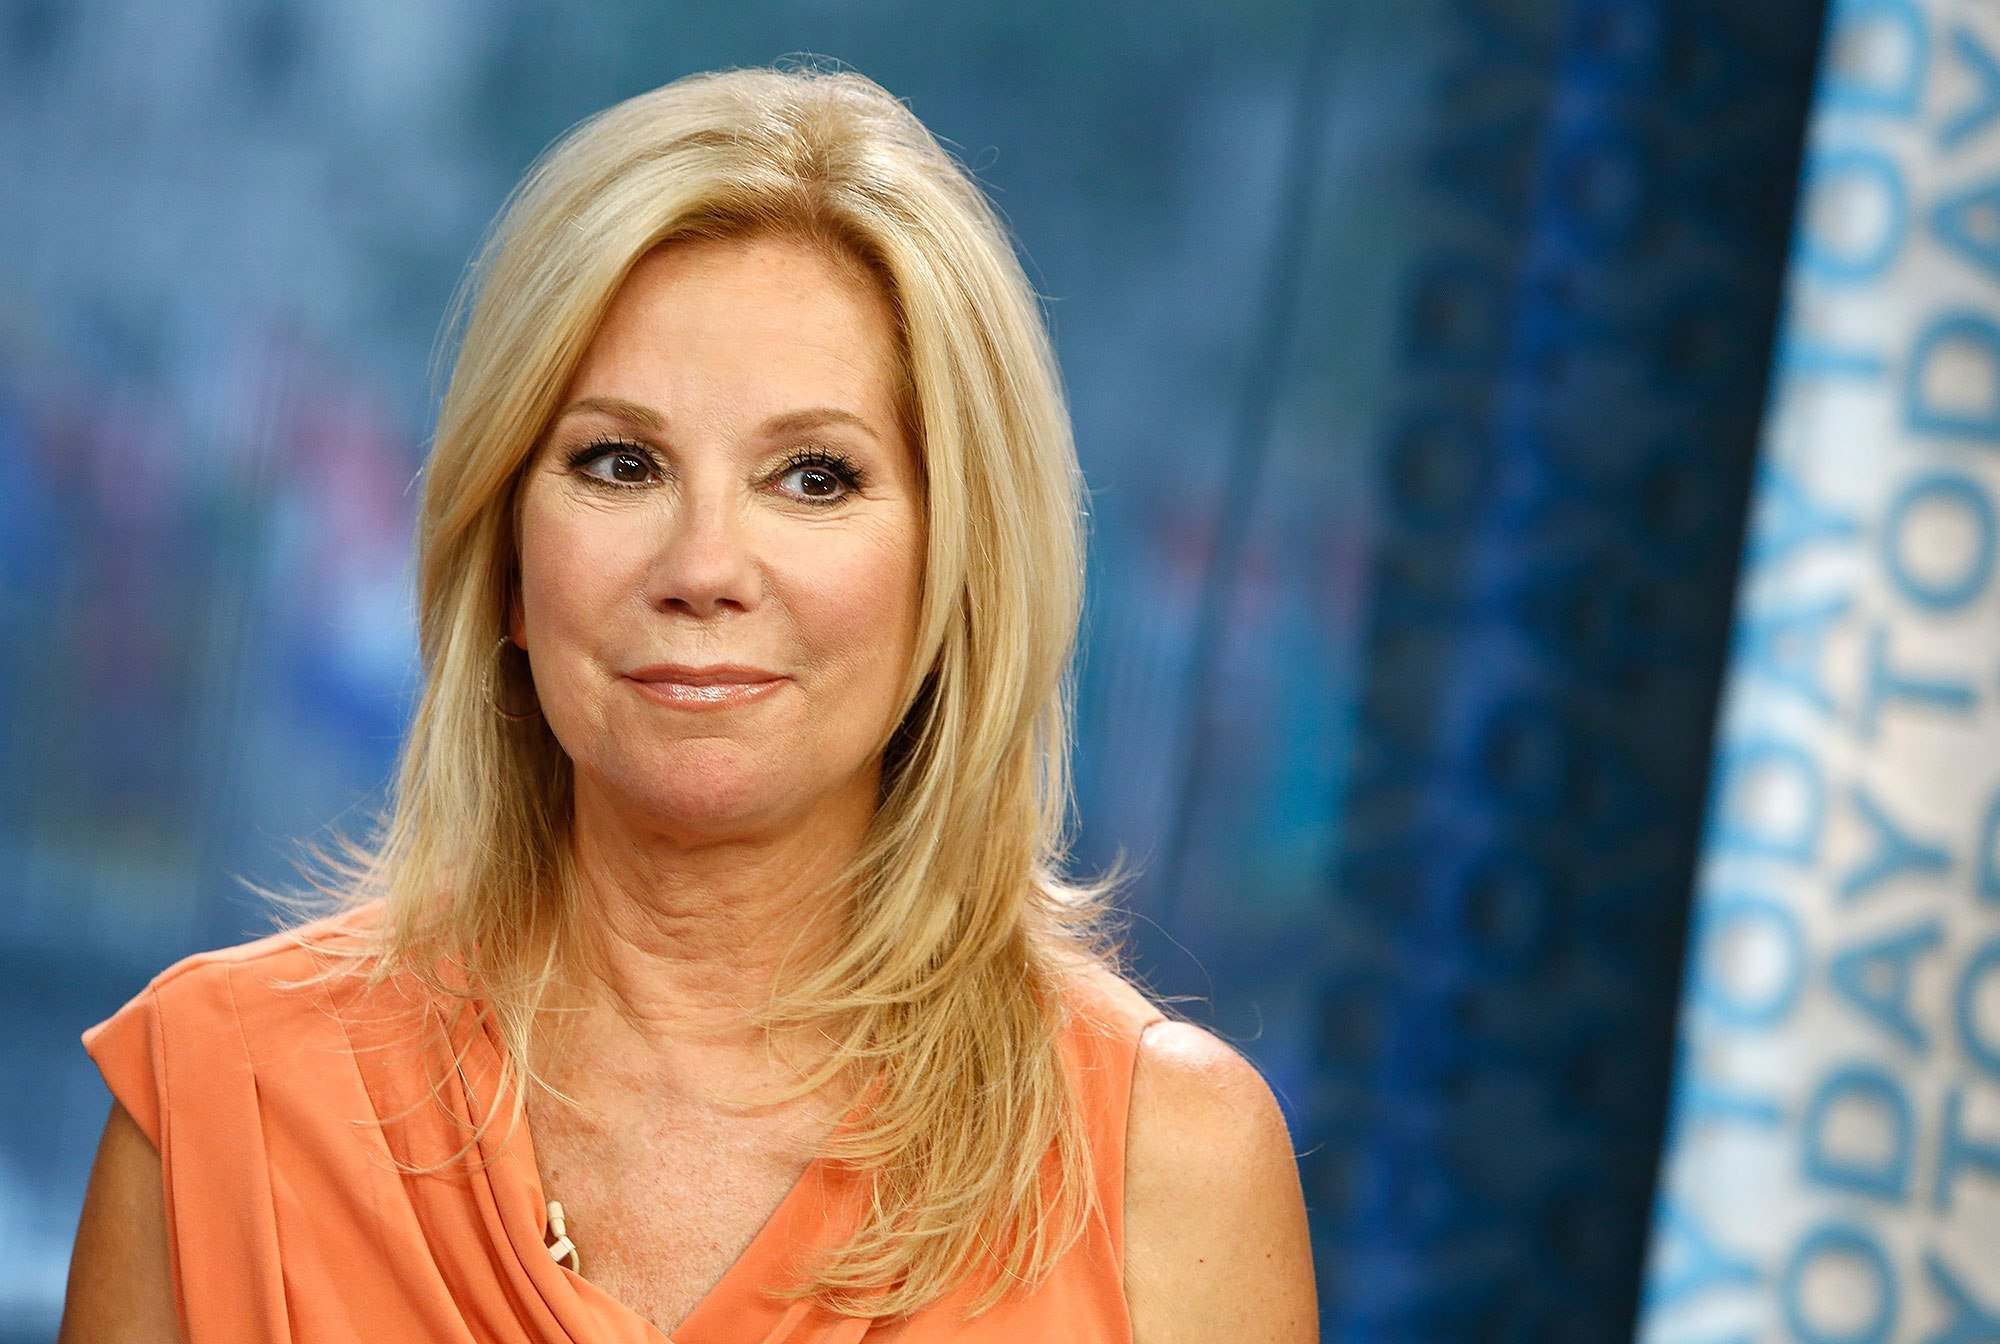 Kathie Lee Gifford I hate the malebashing thats going on in the world today